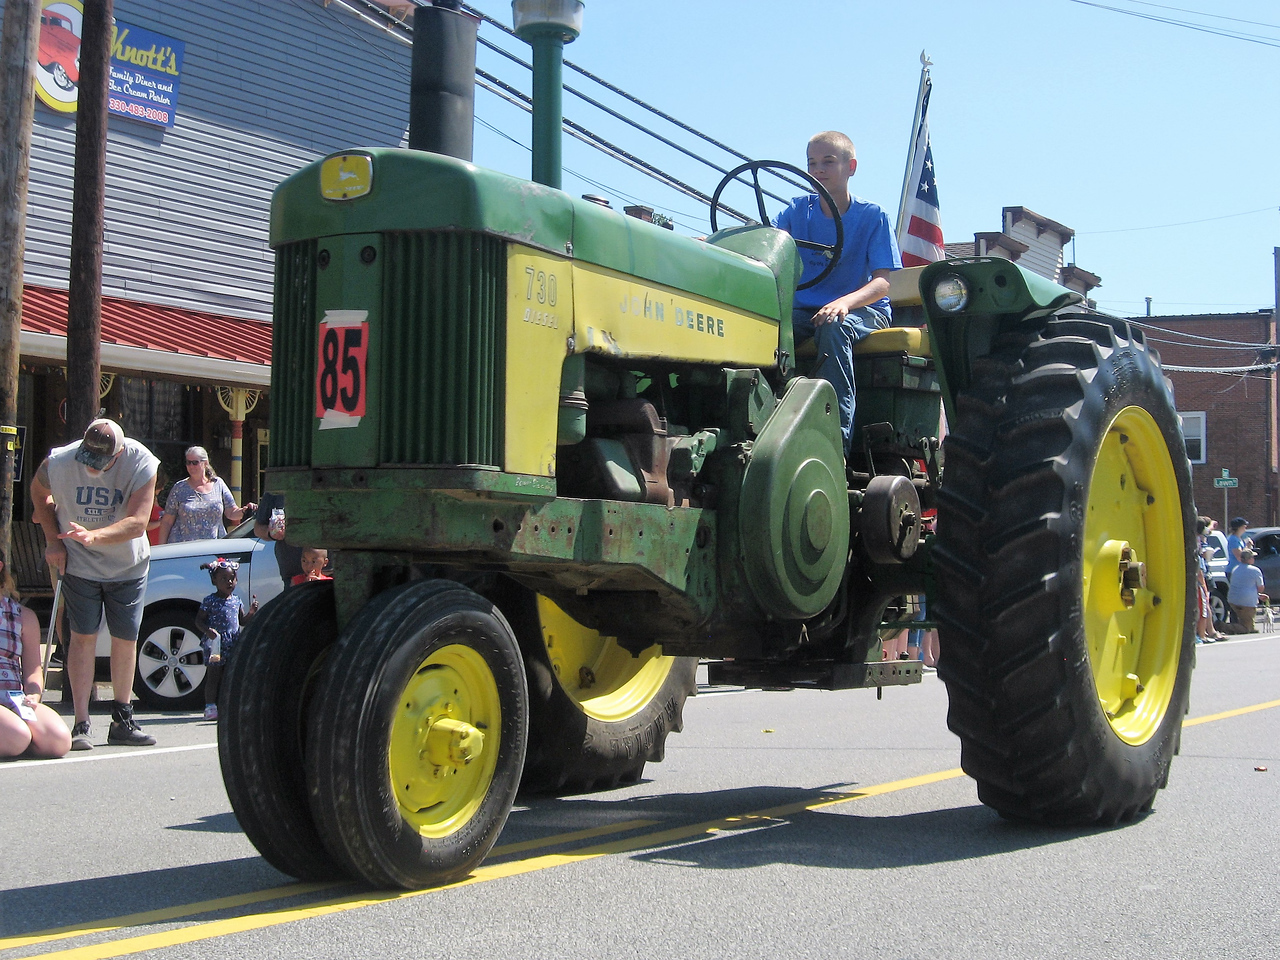 BOB SANDRICK / GAZETTE This giant tractor had a tiny driver Tuesday morning in the Liverpool Township Fourth of July parade.